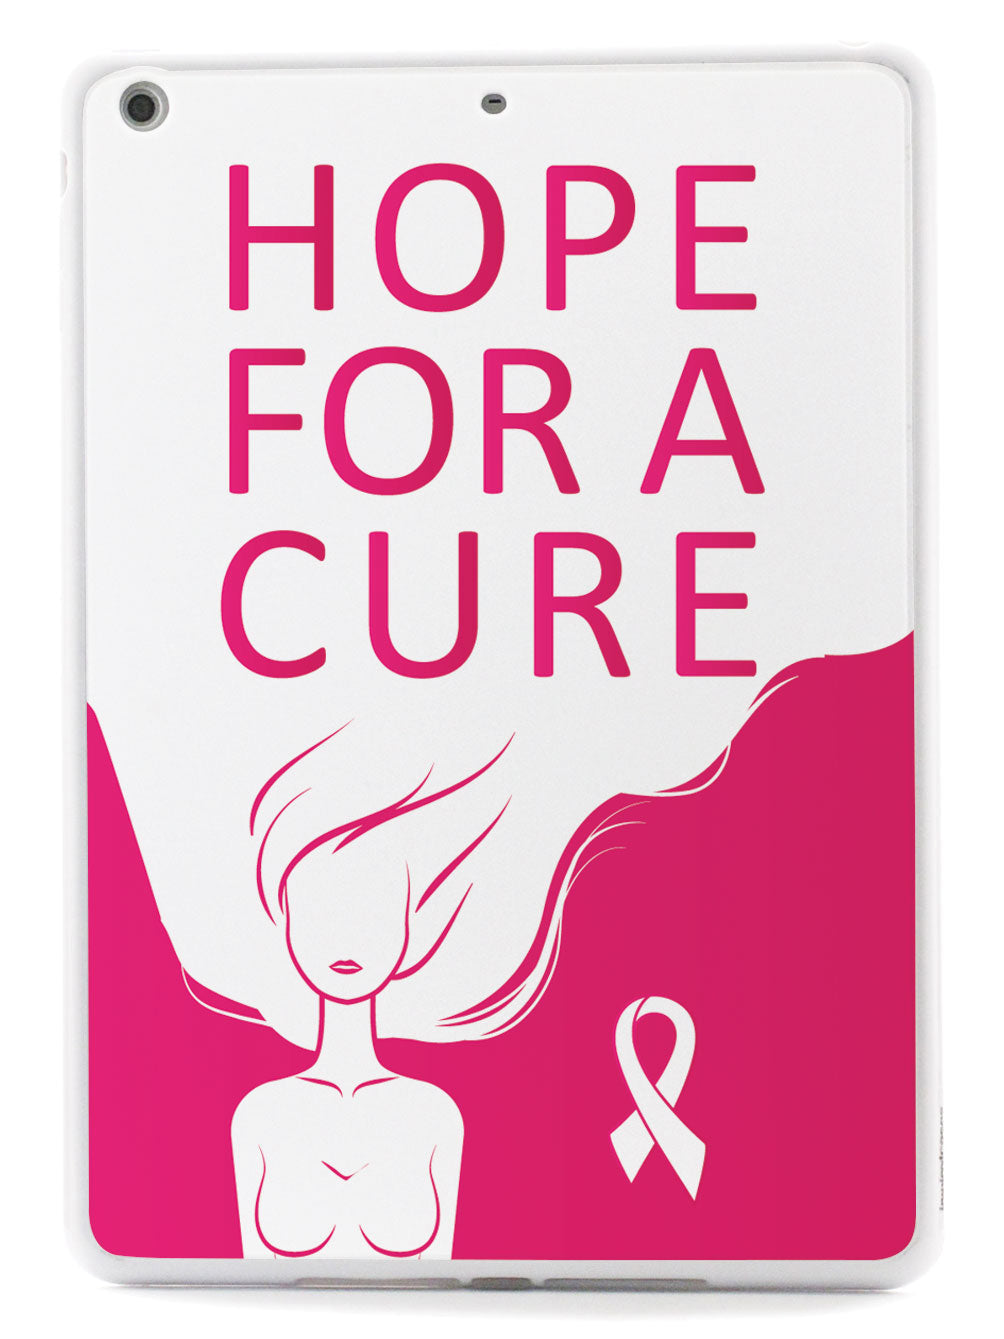 Hope For A Cure - Breast Cancer Awareness - White Case